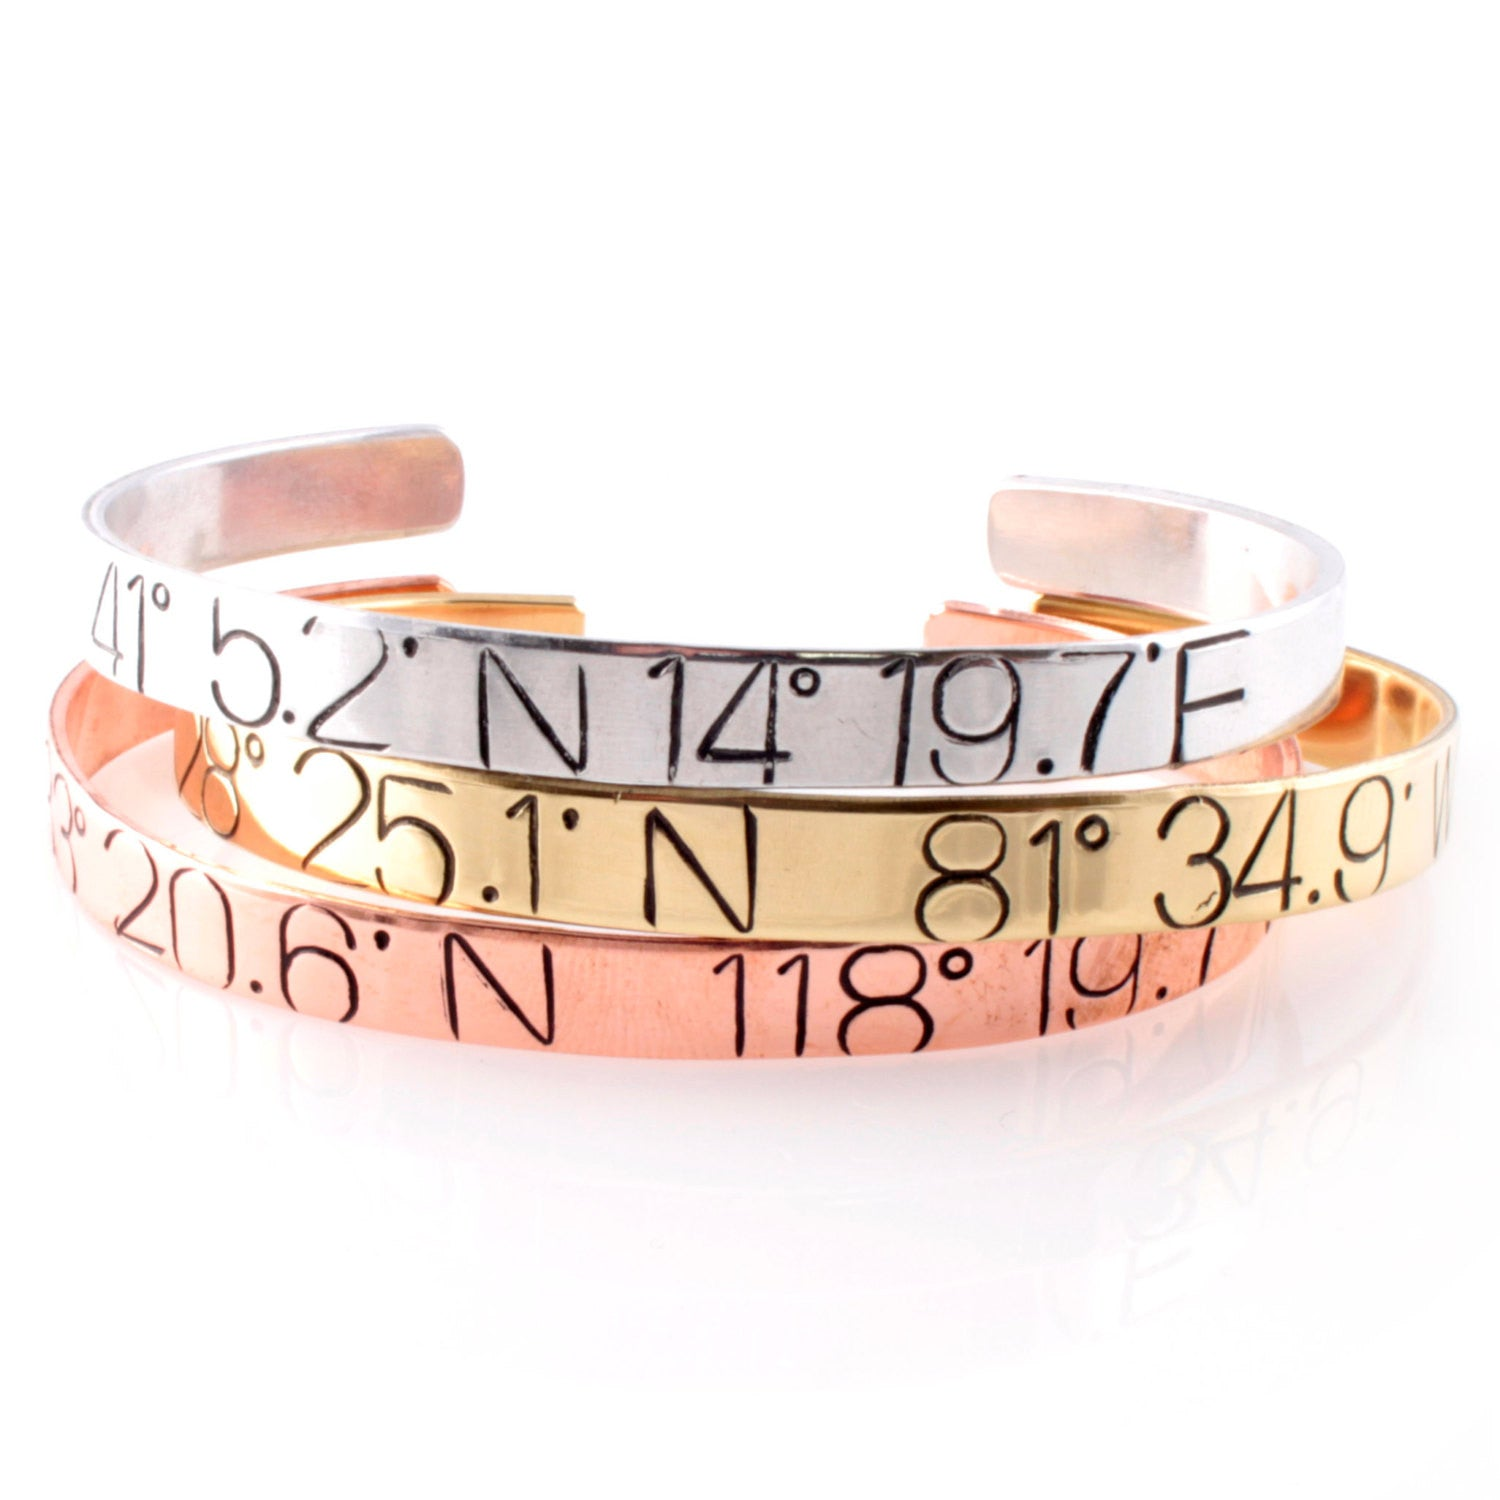 bracelet lat cuff longitude stamped bracelets sale latitude long hand products